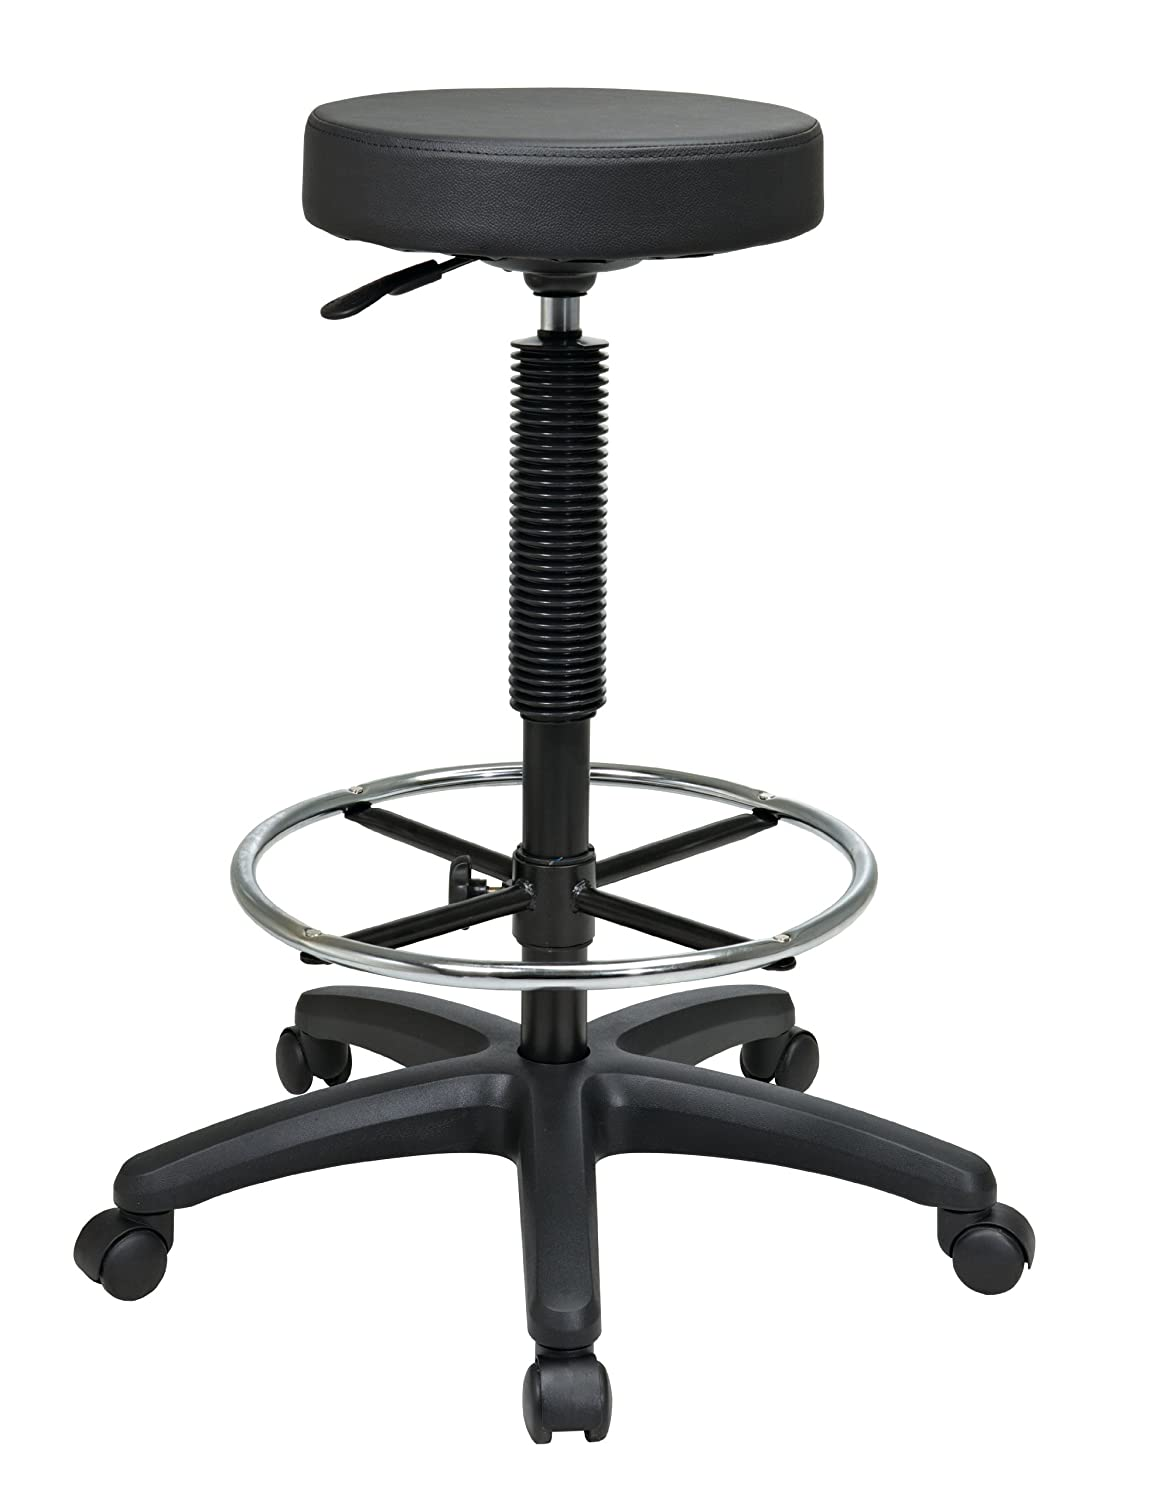 Amazon.com Office Star Thick Padded Vinyl Seat Backless Drafting Stool with Adjustable Footring Black 23-33-Inch Heigh Adjustable Kitchen u0026 Dining  sc 1 st  Amazon.com & Amazon.com: Office Star Thick Padded Vinyl Seat Backless Drafting ... islam-shia.org